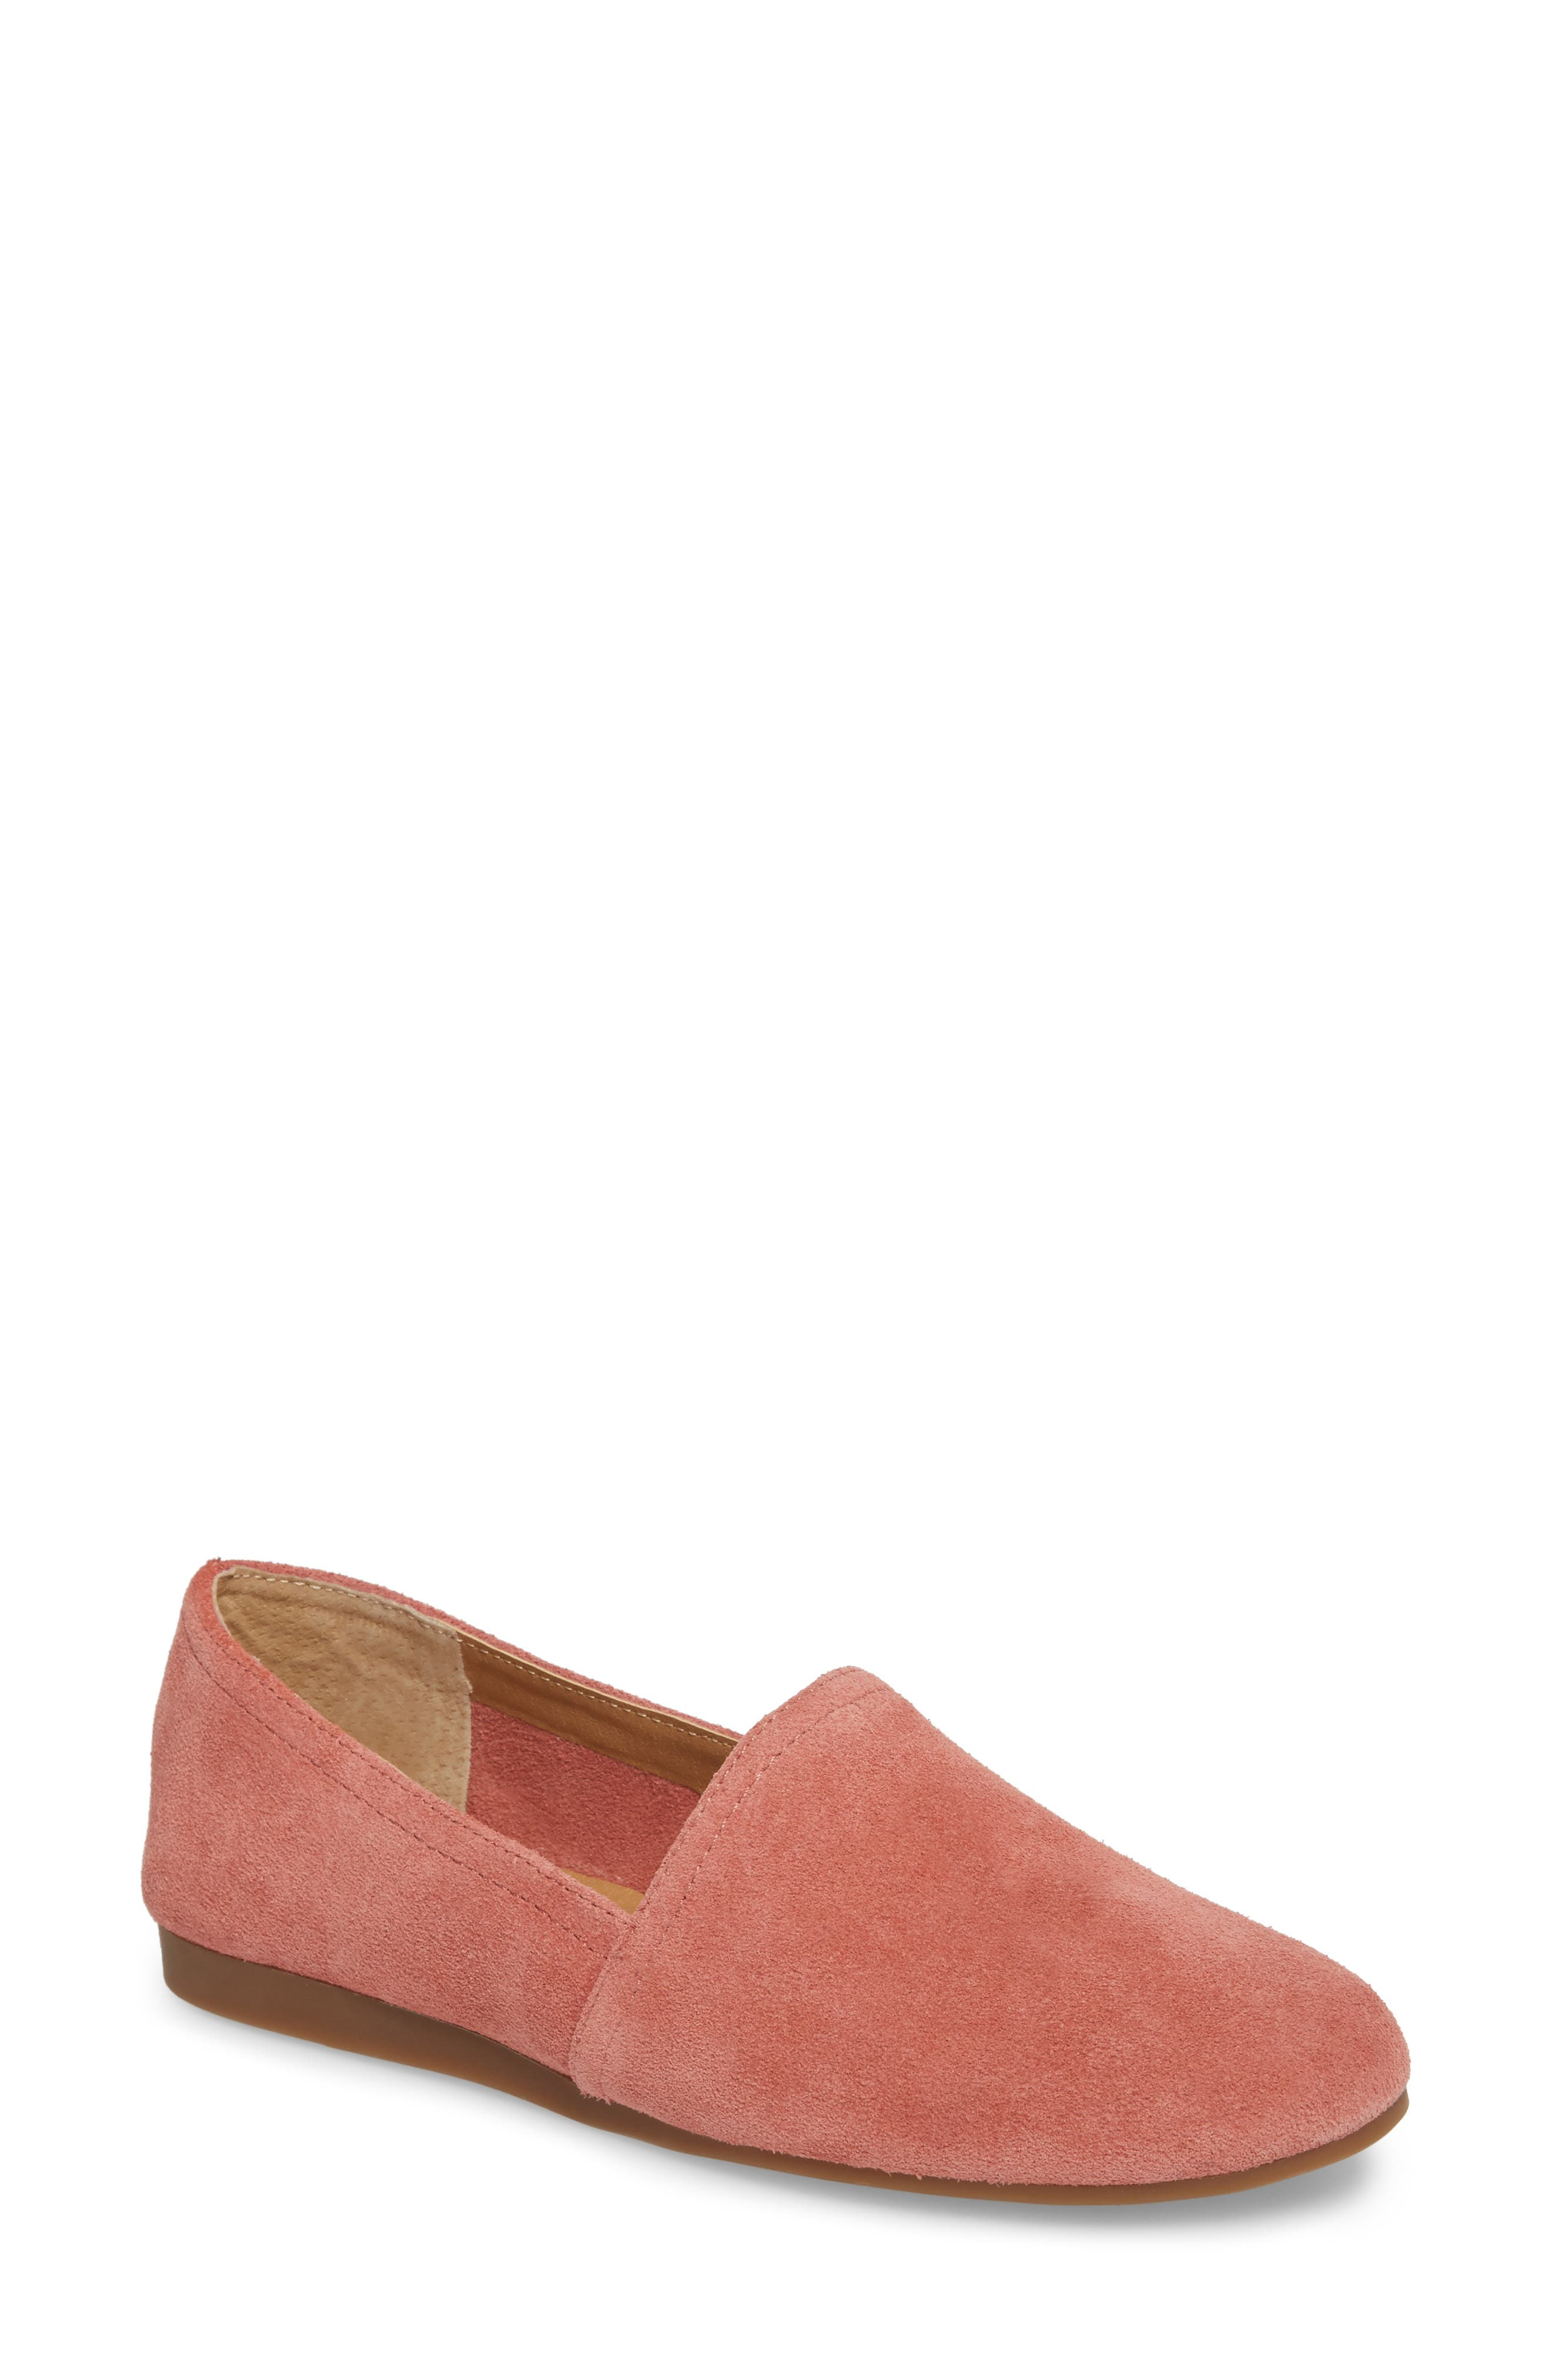 Brettany Loafer,                             Main thumbnail 4, color,